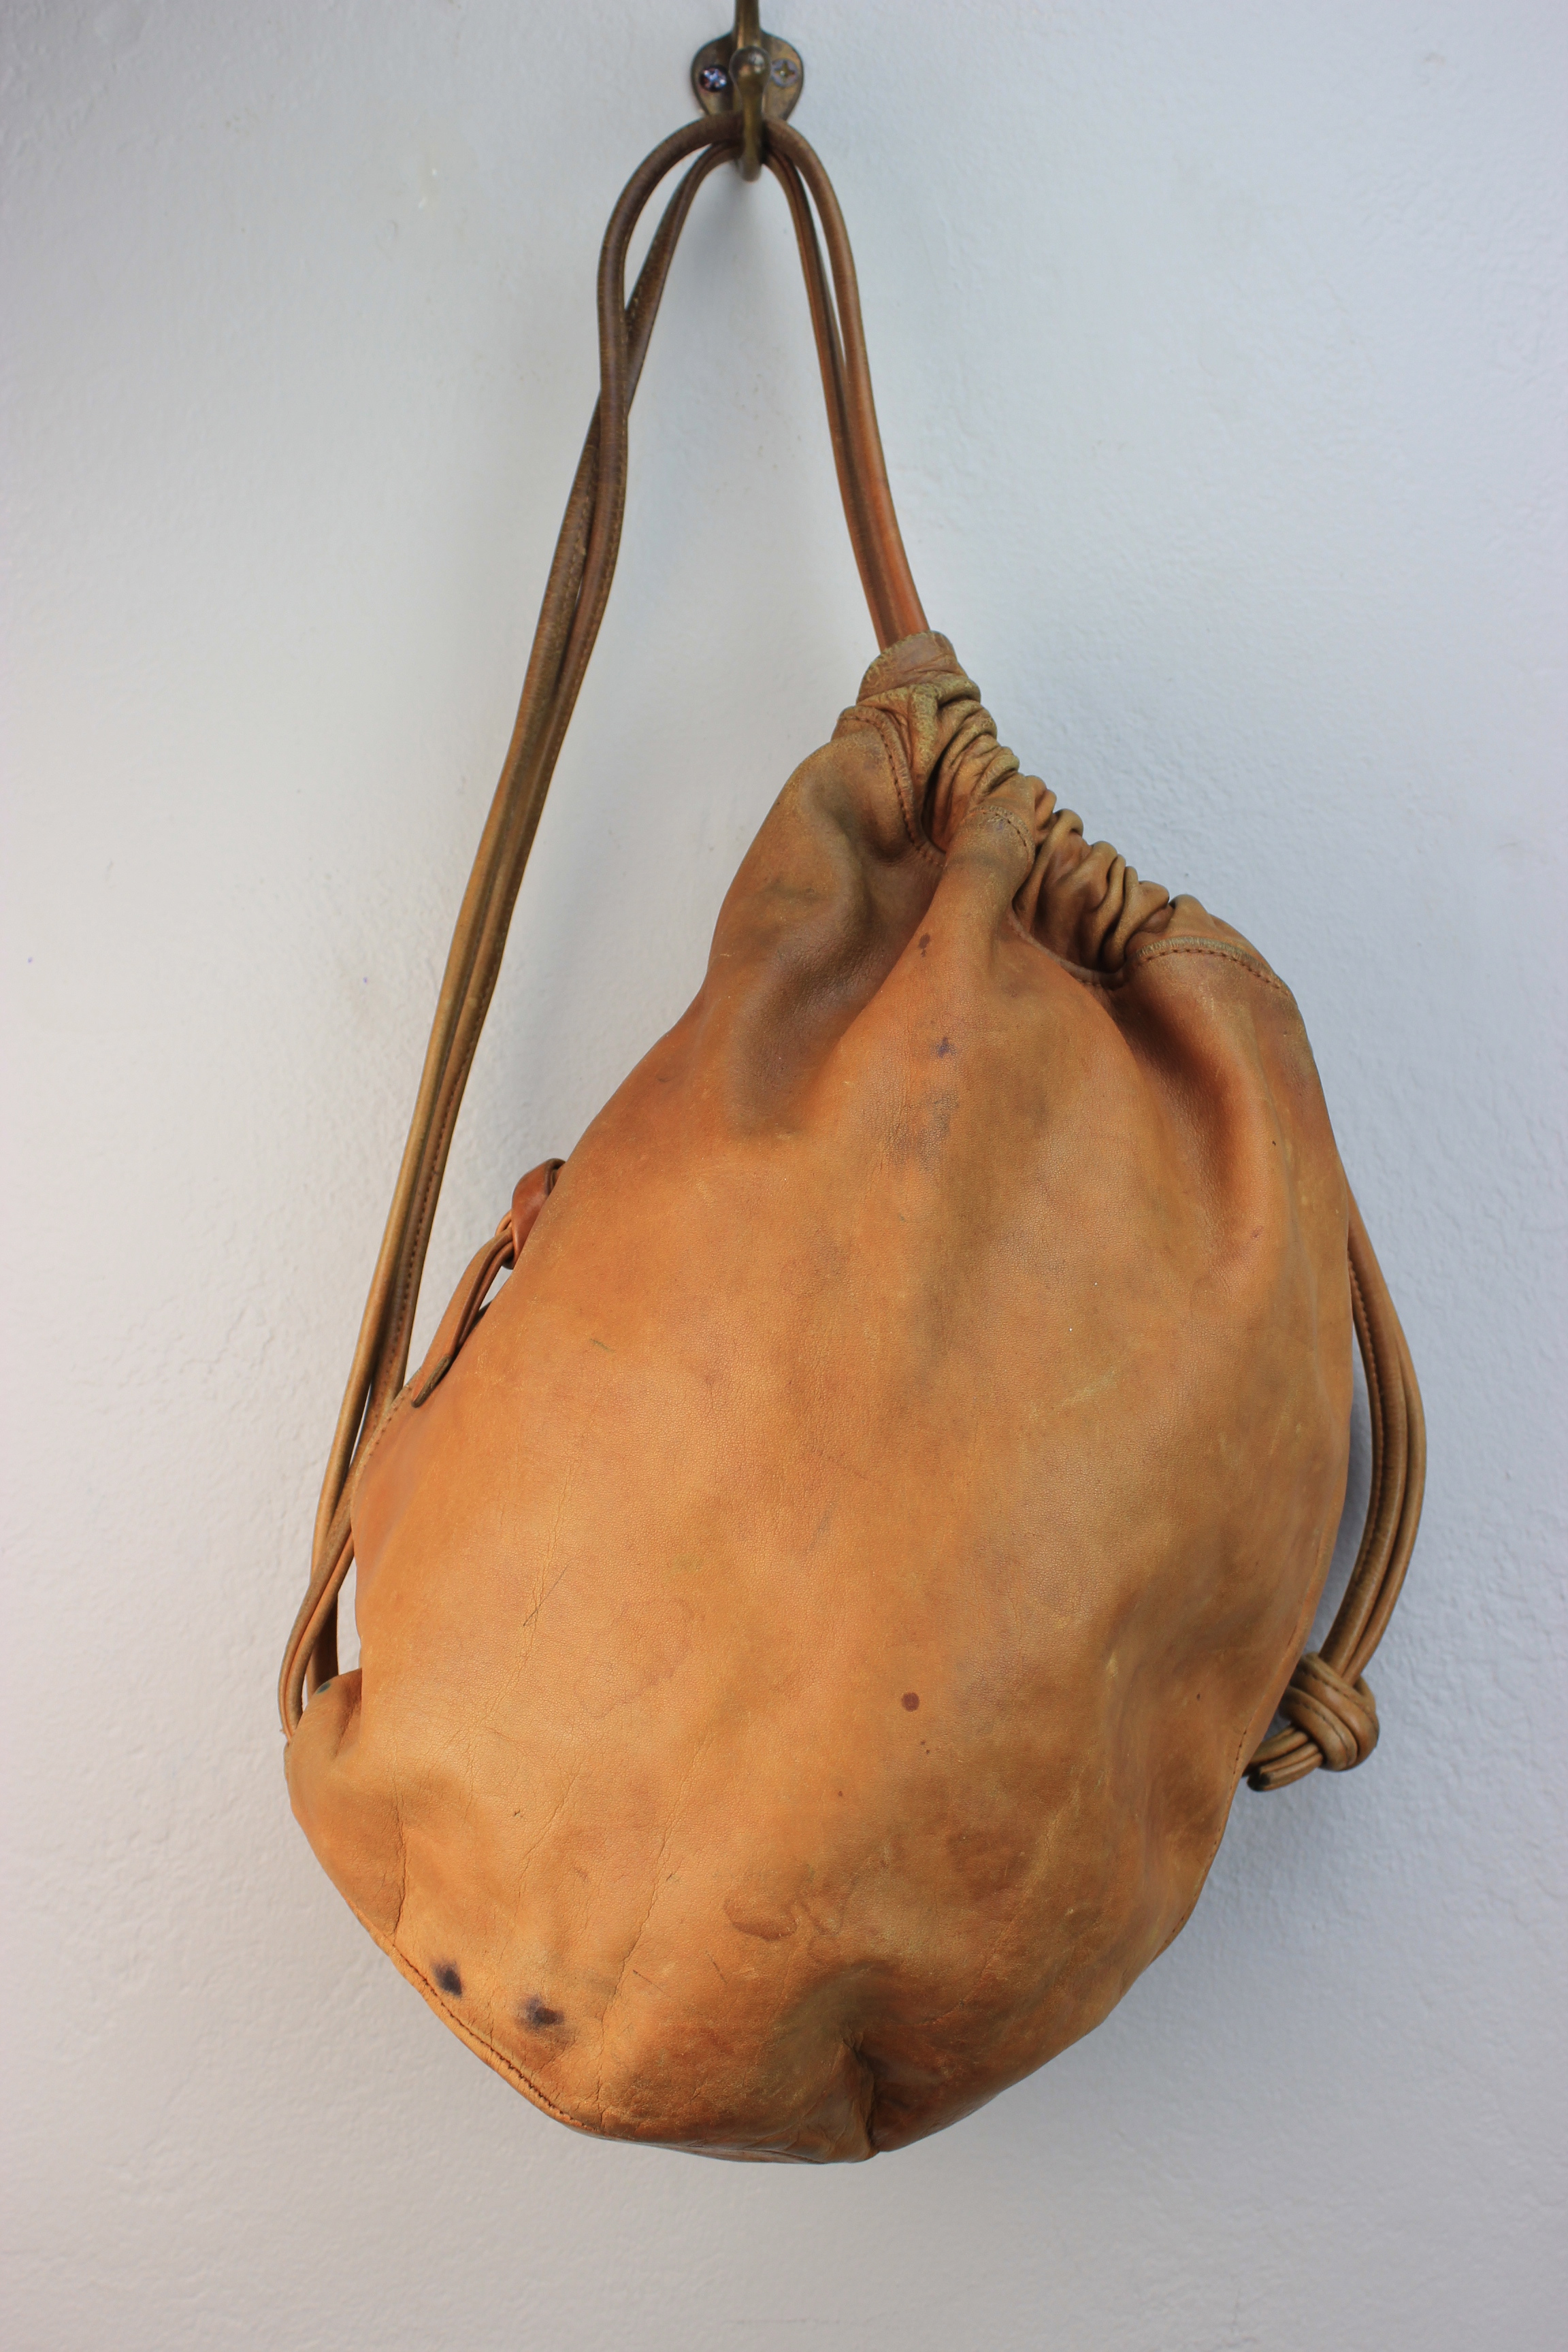 Vintage handbags online images Carmel Brown Vintage Leather Bags ...